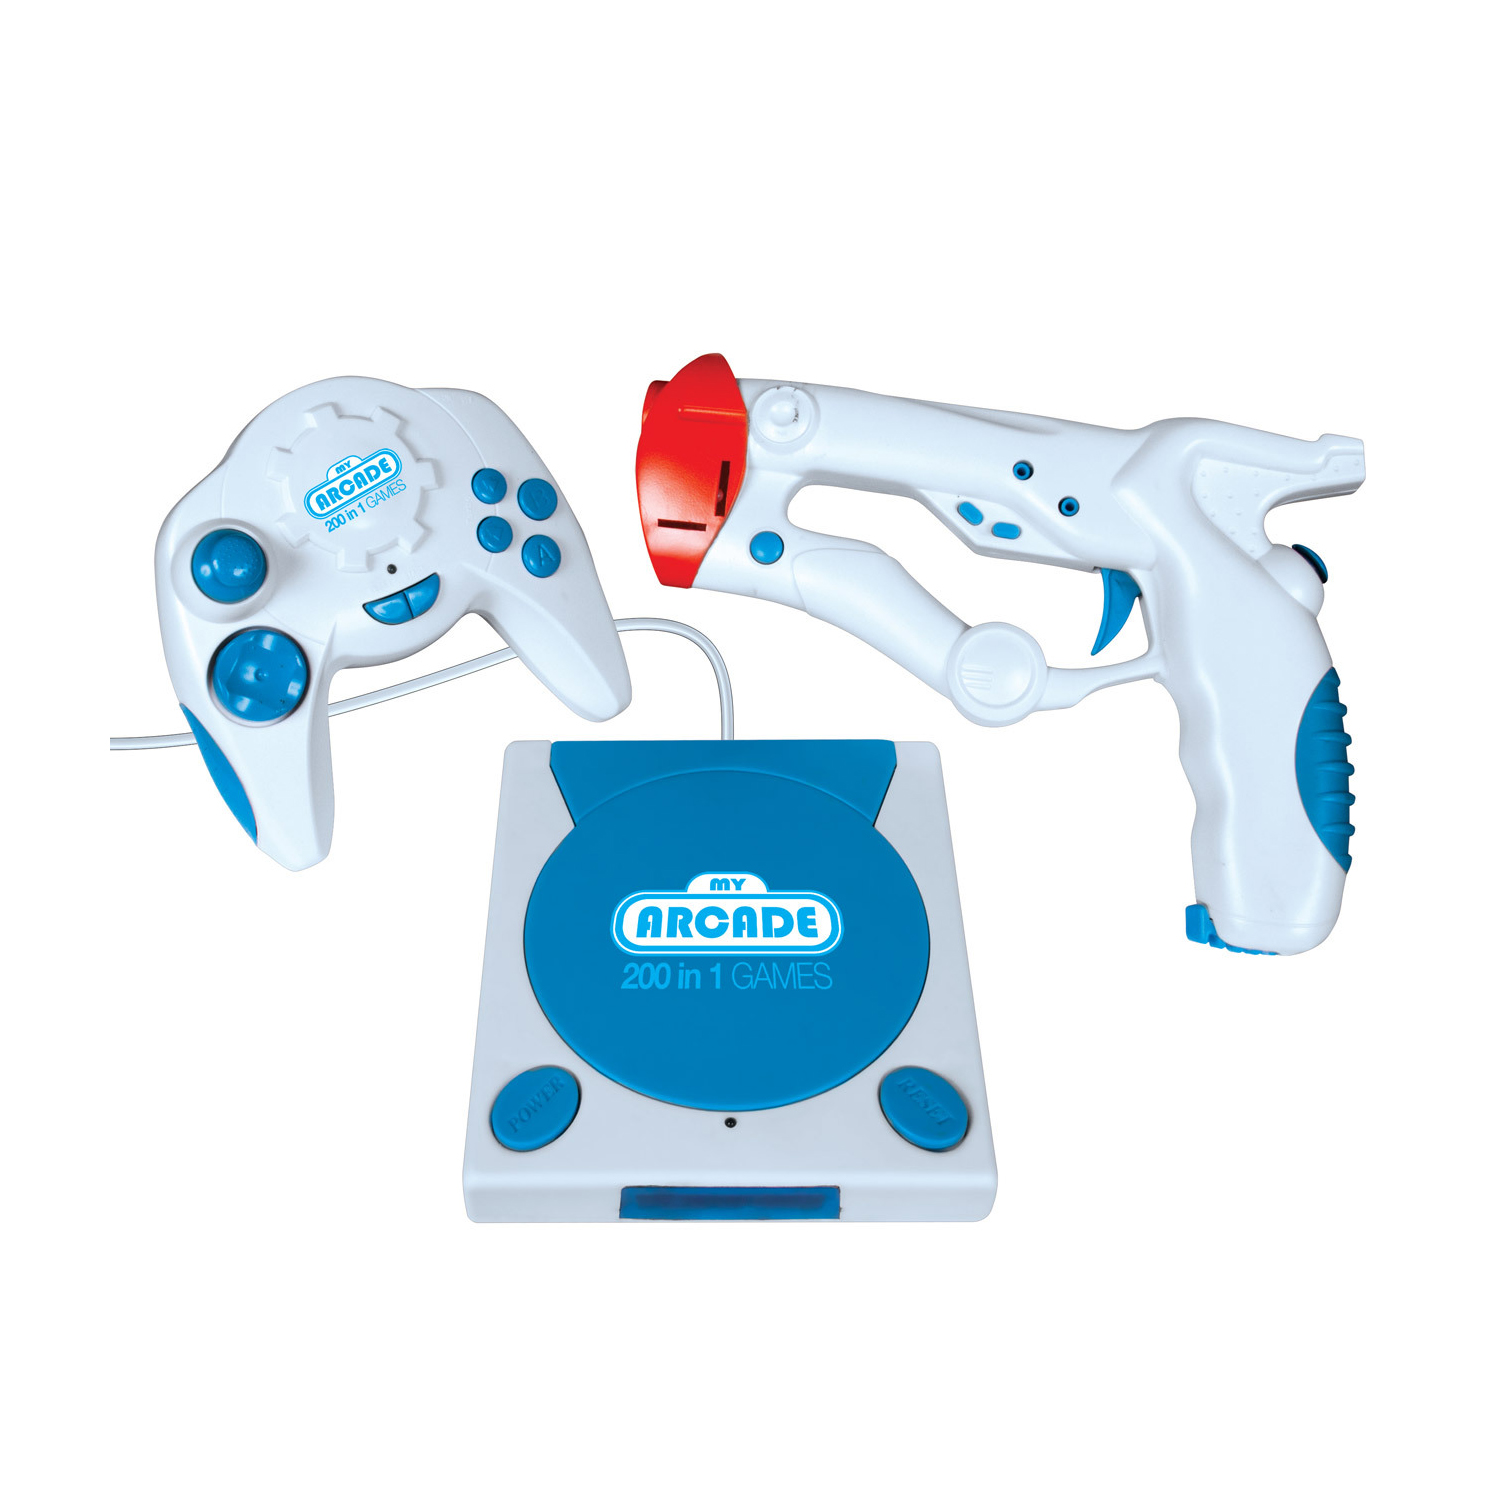 Dreamgear My Arcade Video Game Station with 200 Built-In Games, Blue, DRM2572